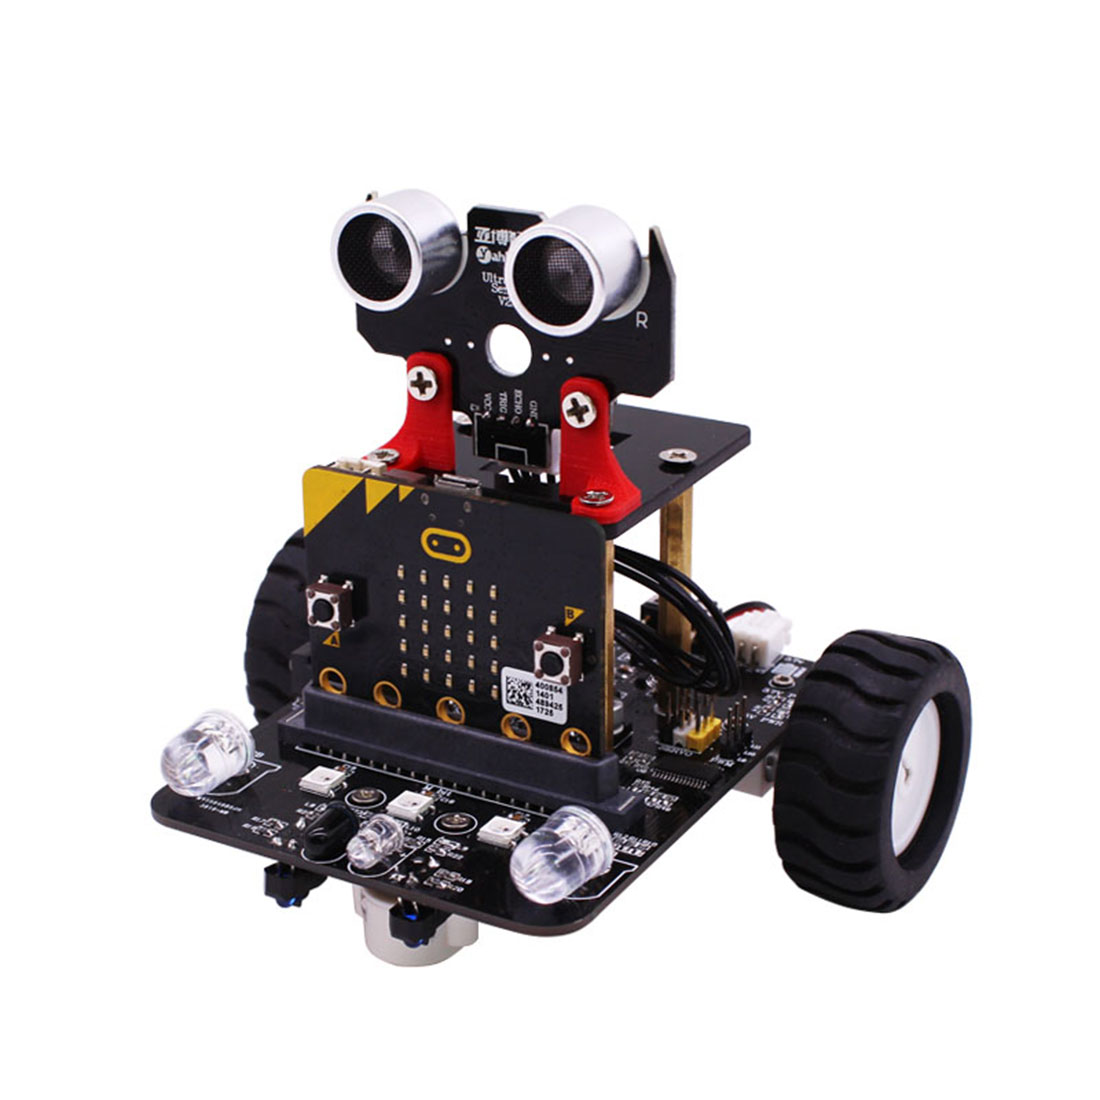 Graphical Programmable Robot Car With Bluetooth IR And Tracking Module Stem Steam Robot Car Toy For Micro:Bit BBC(Without Board)